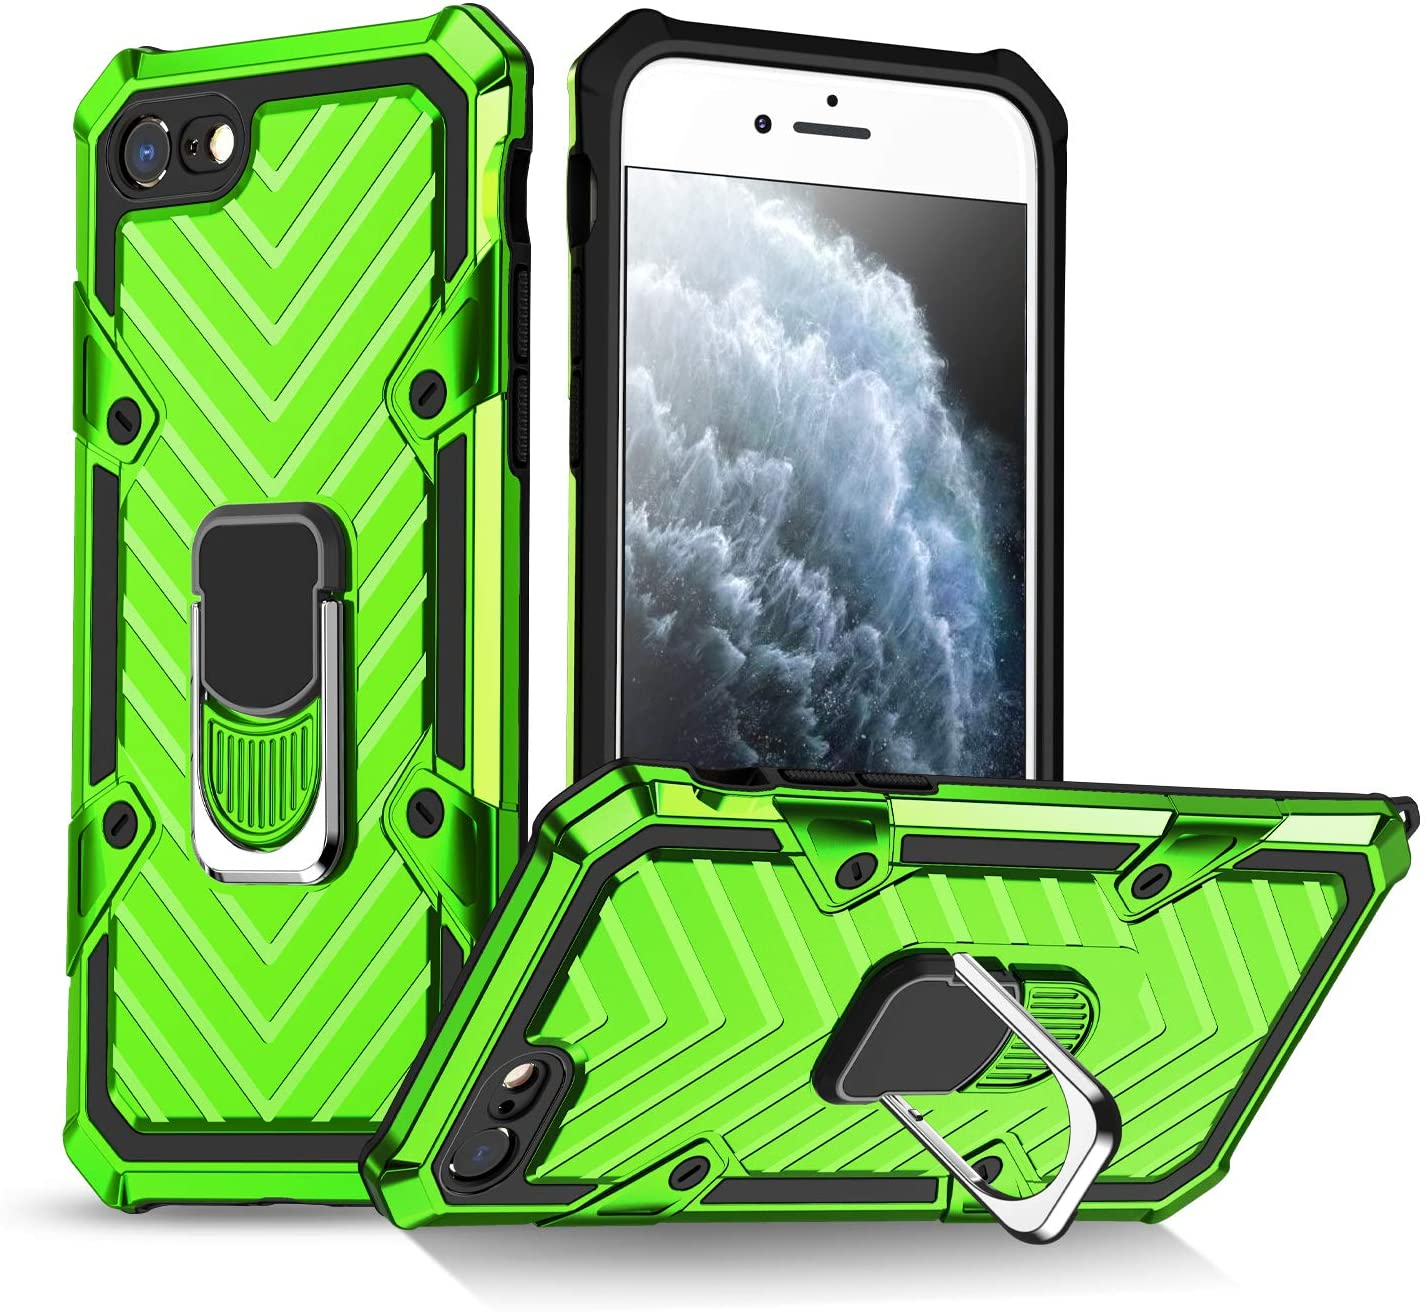 iPhone SE 2020 Case, iPhone 7/8 Case | Kickstand | [ Military Grade ] 15ft. SGS Drop Tested Protective Case | Compatible for Apple iPhone SE 2020 Cases, iPhone 7/8 Cases-Green (iphone 7/8/SE 2020)